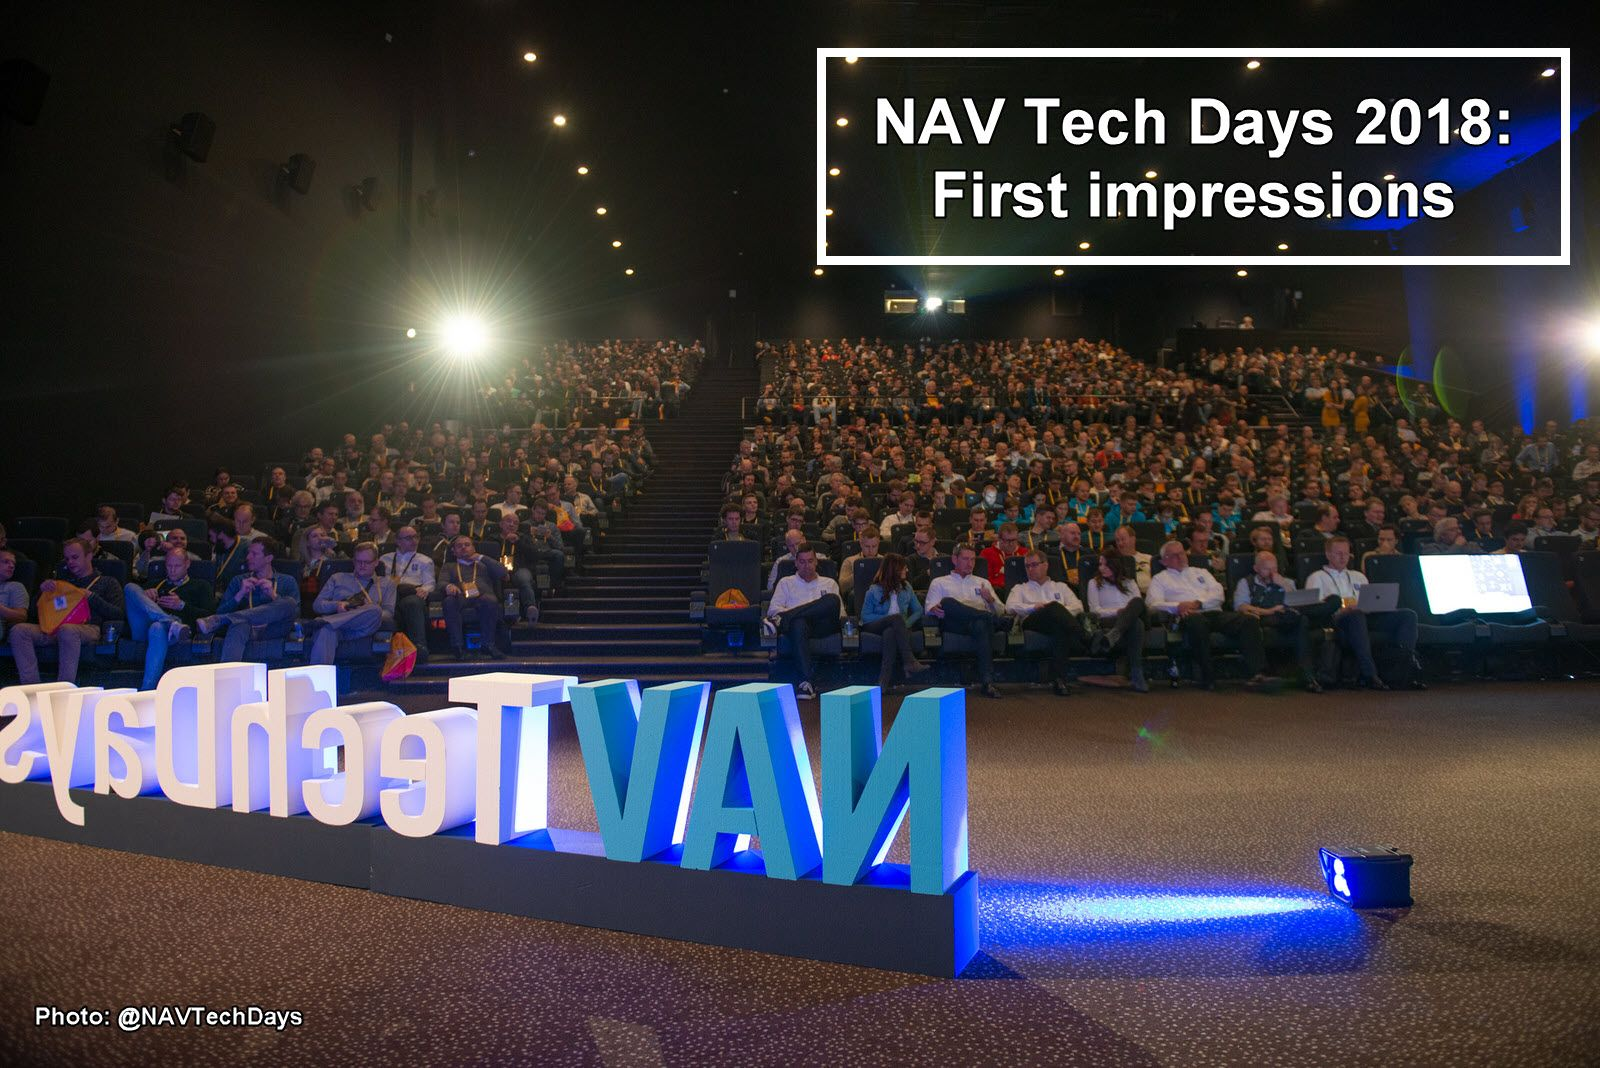 Nav Tech Days 2018 impressions